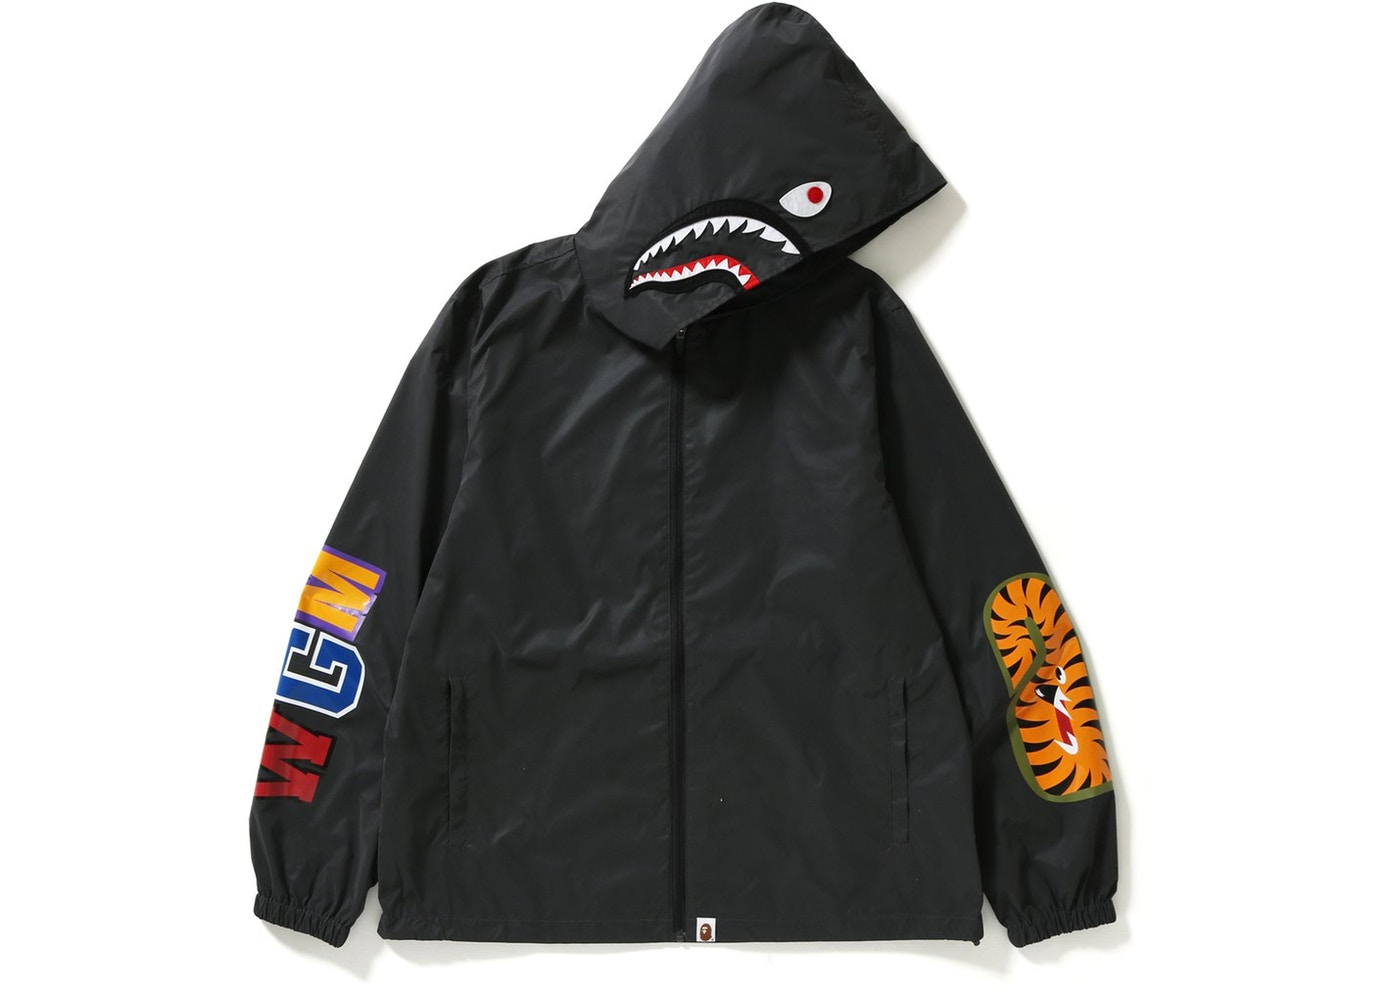 8bb5a28cc5b2 Bape Reflector Shark Hoodie Jacket A Bathing Ape